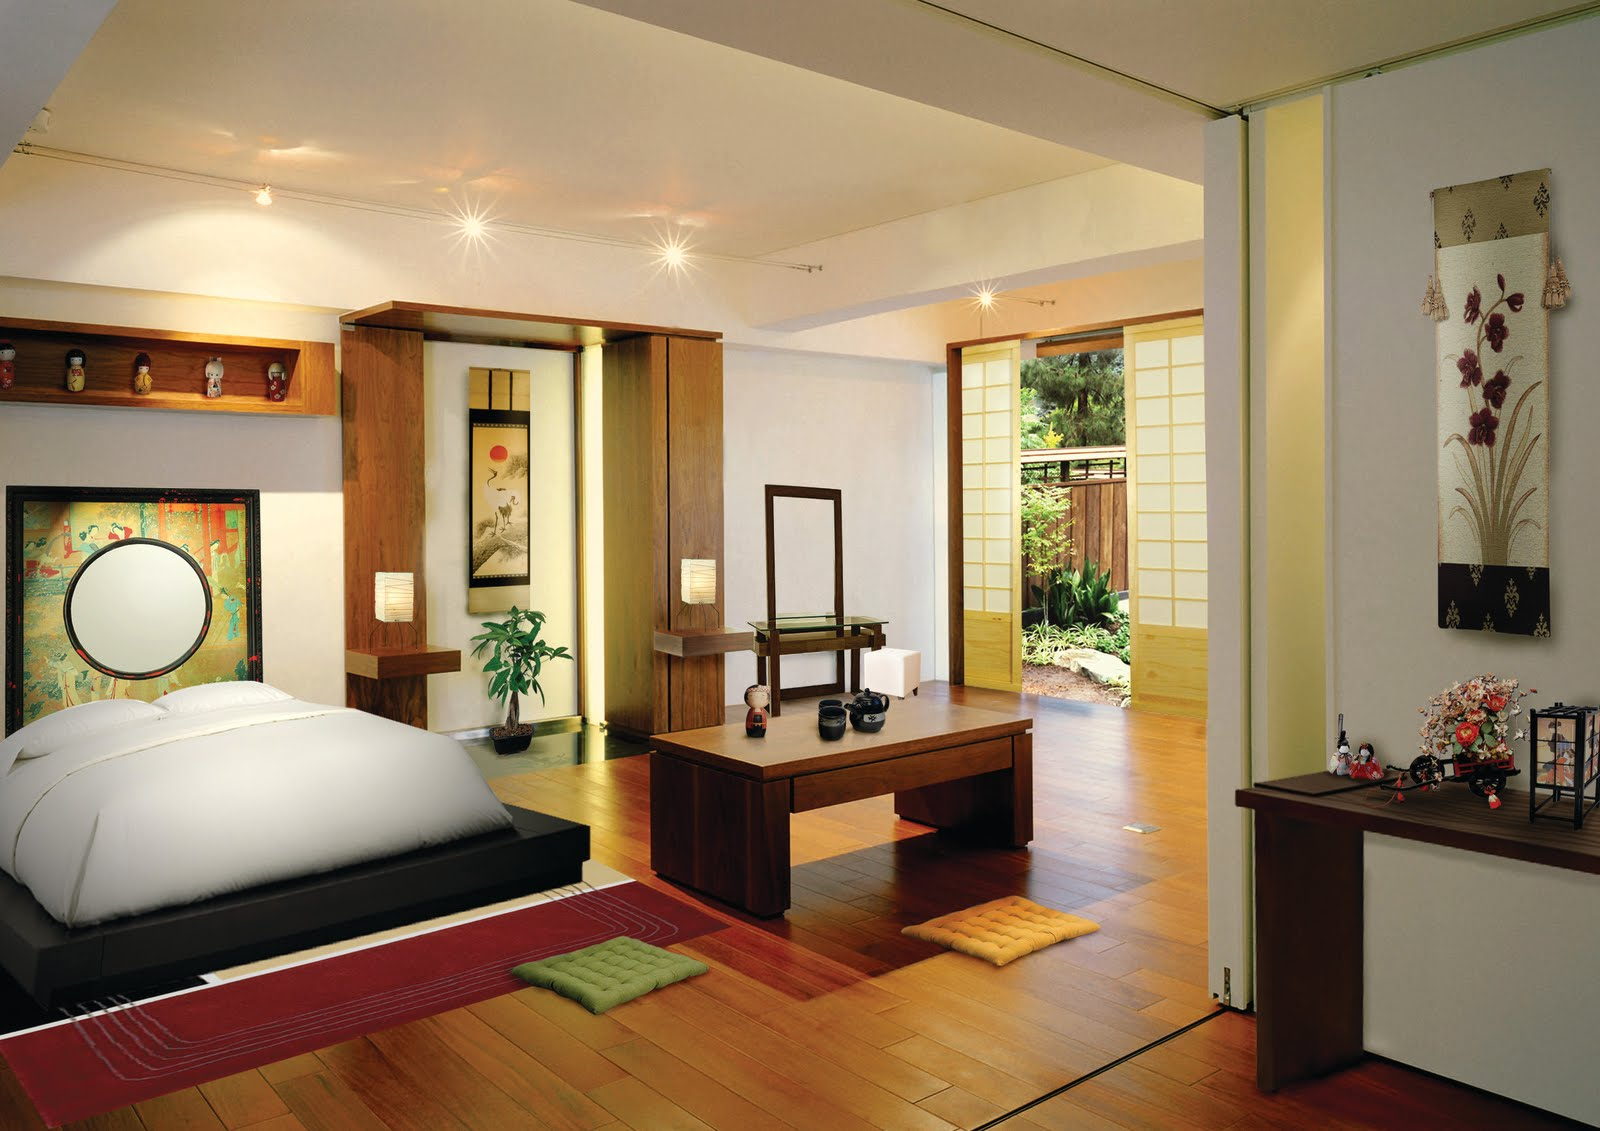 Melokumi japanese style bedroom design for Different bedroom styles